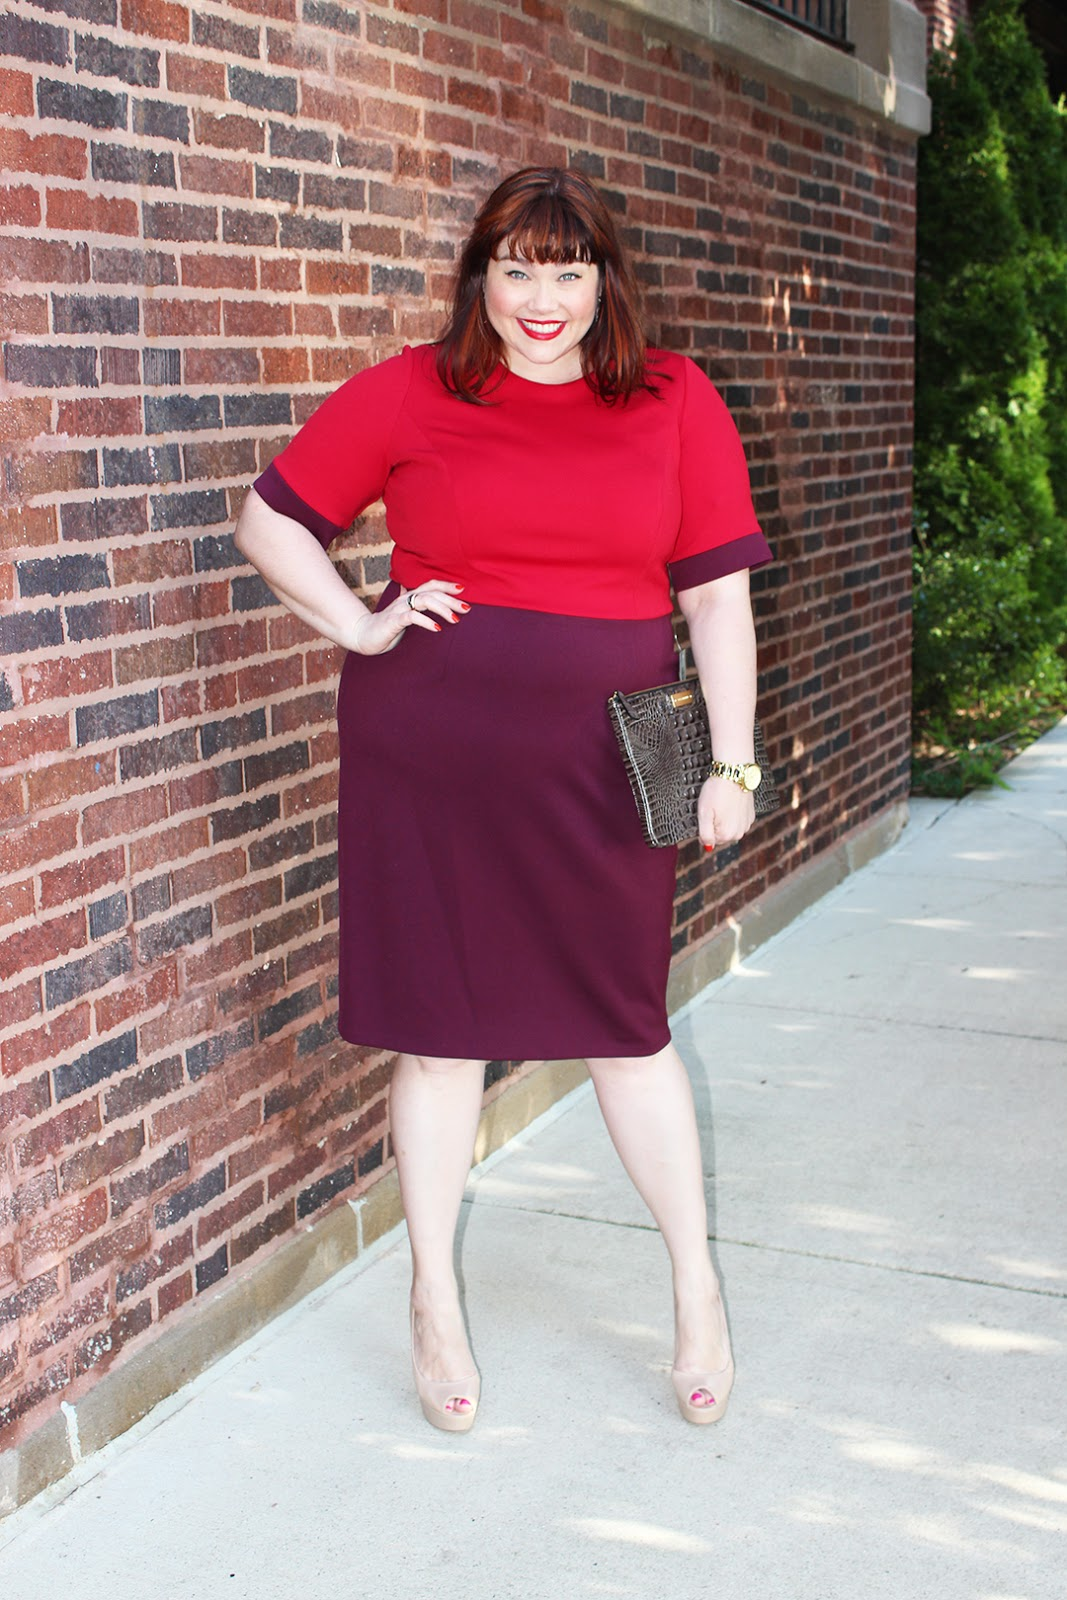 Chicago Plus Size Blogger Amber from Style Plus Curves in a Maggy London Plus Size Sheath Dress Red and Burgundy